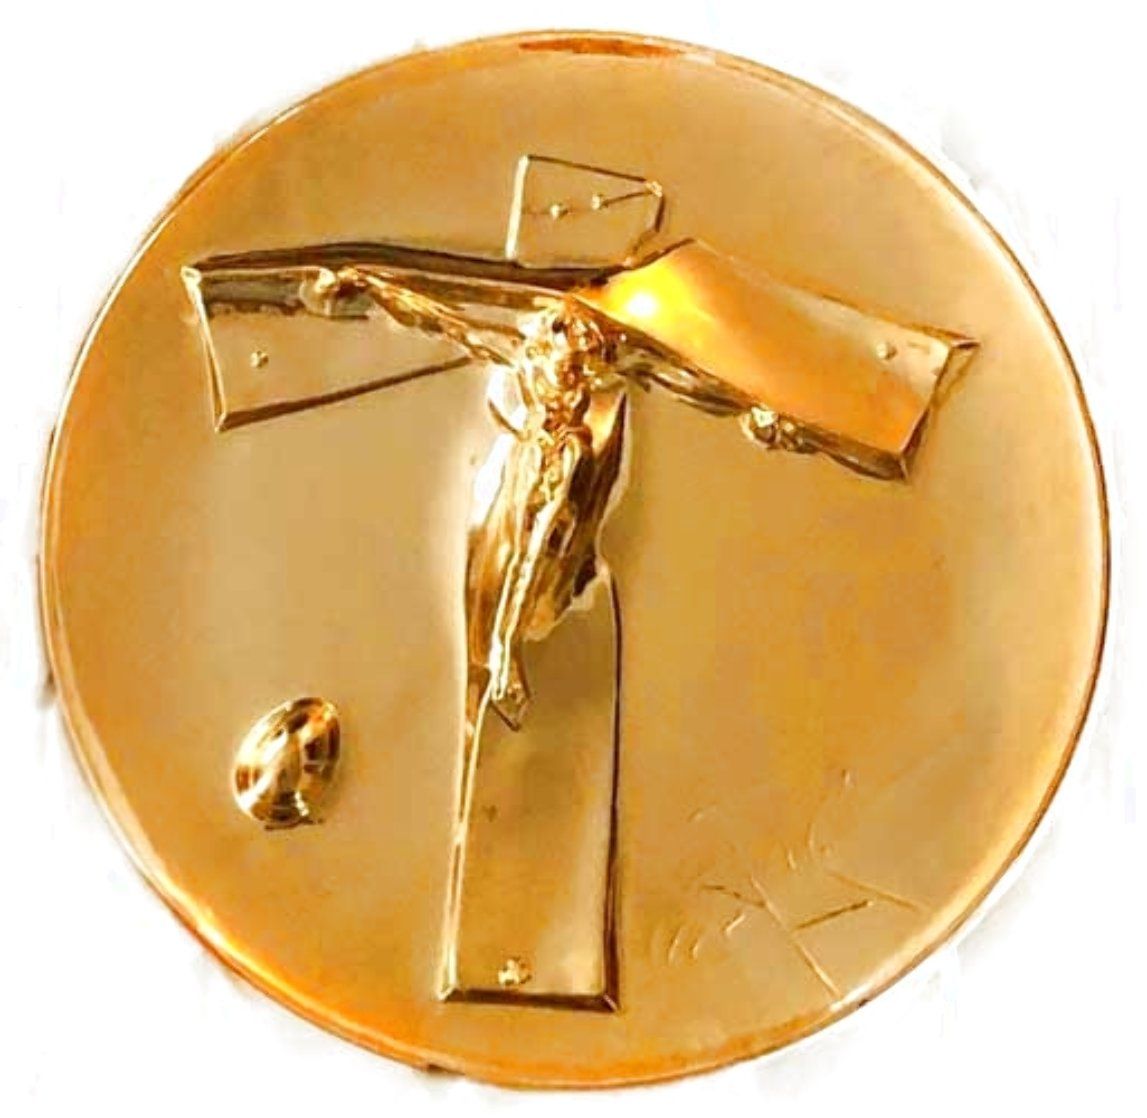 Easter Christ 24kt Gold on Silver Plate 1972 9 in Sculpture by Salvador Dali